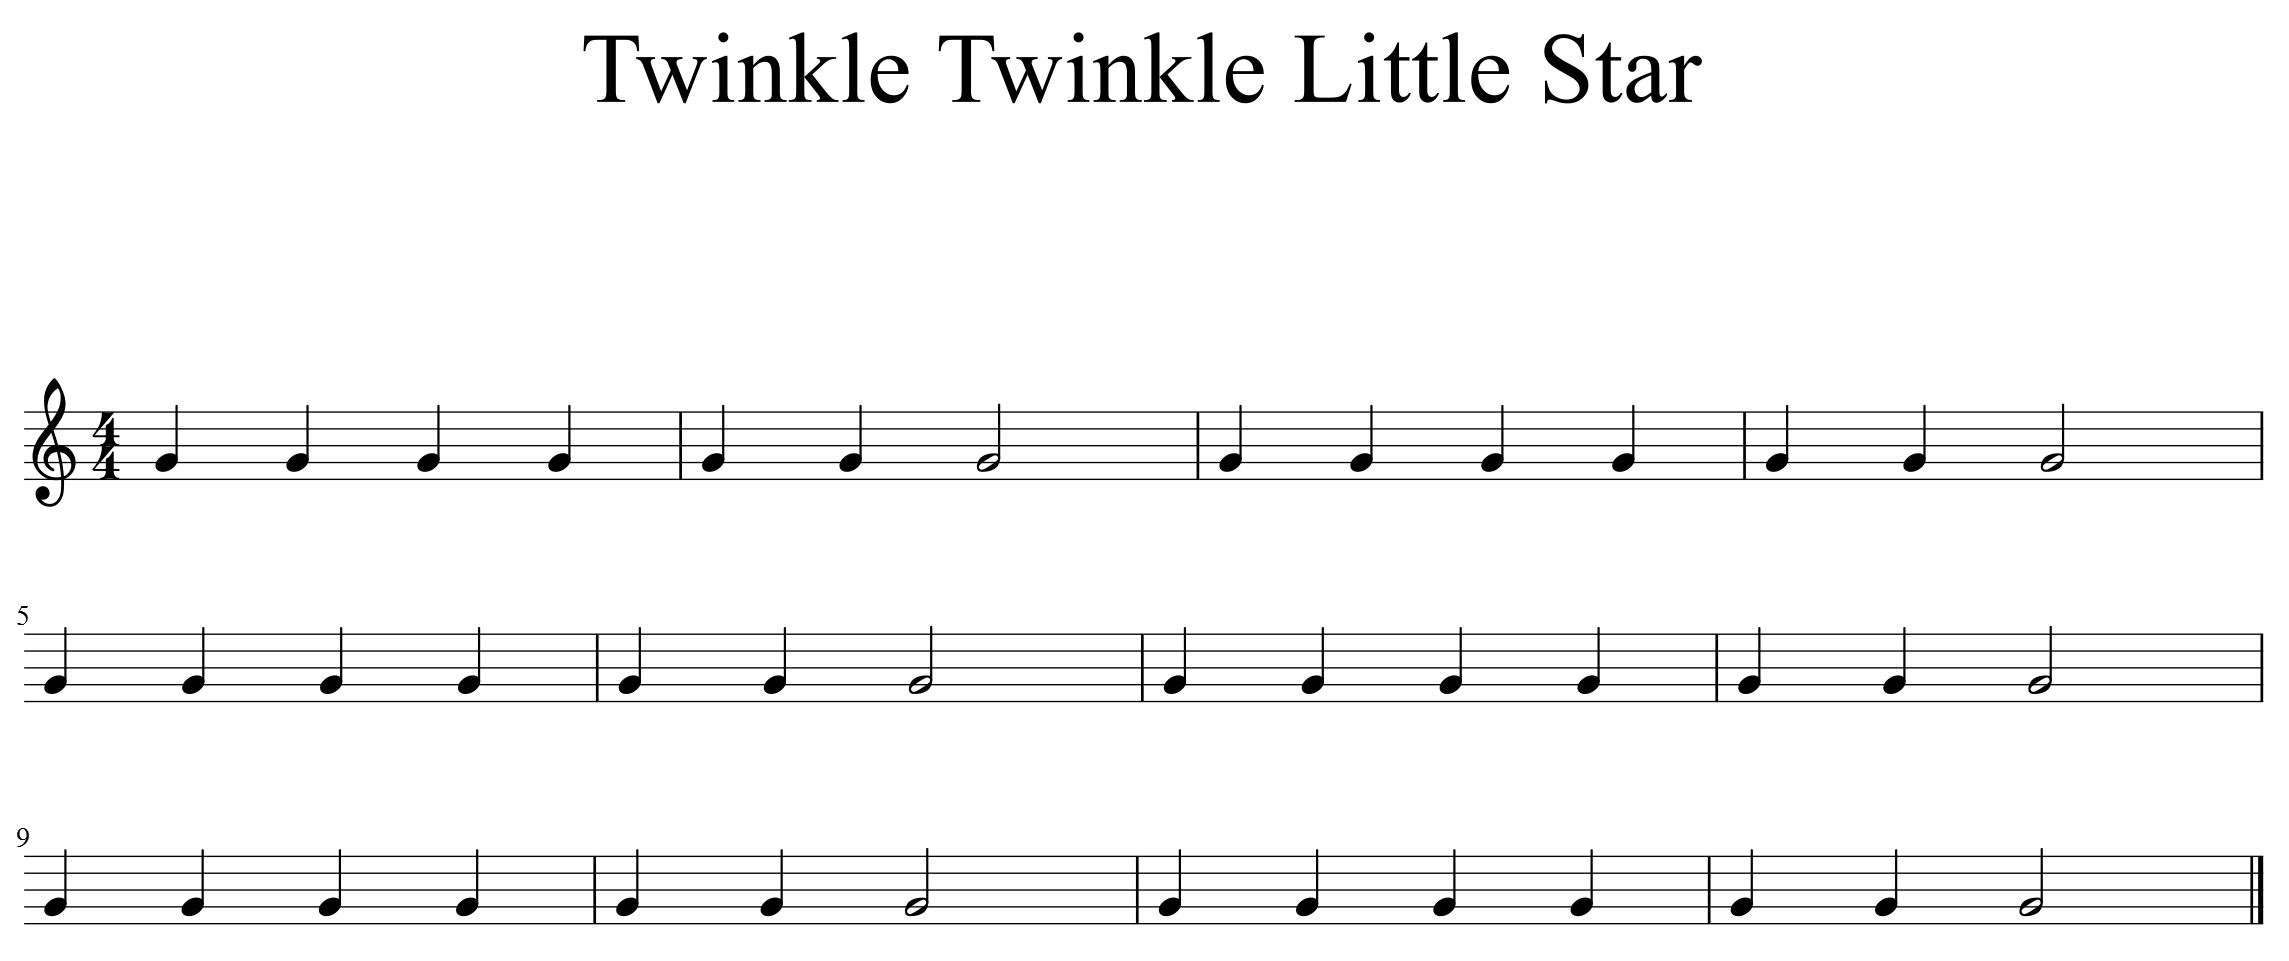 Quarter Notes Half Notes And Twinkle Twinkle Little Star